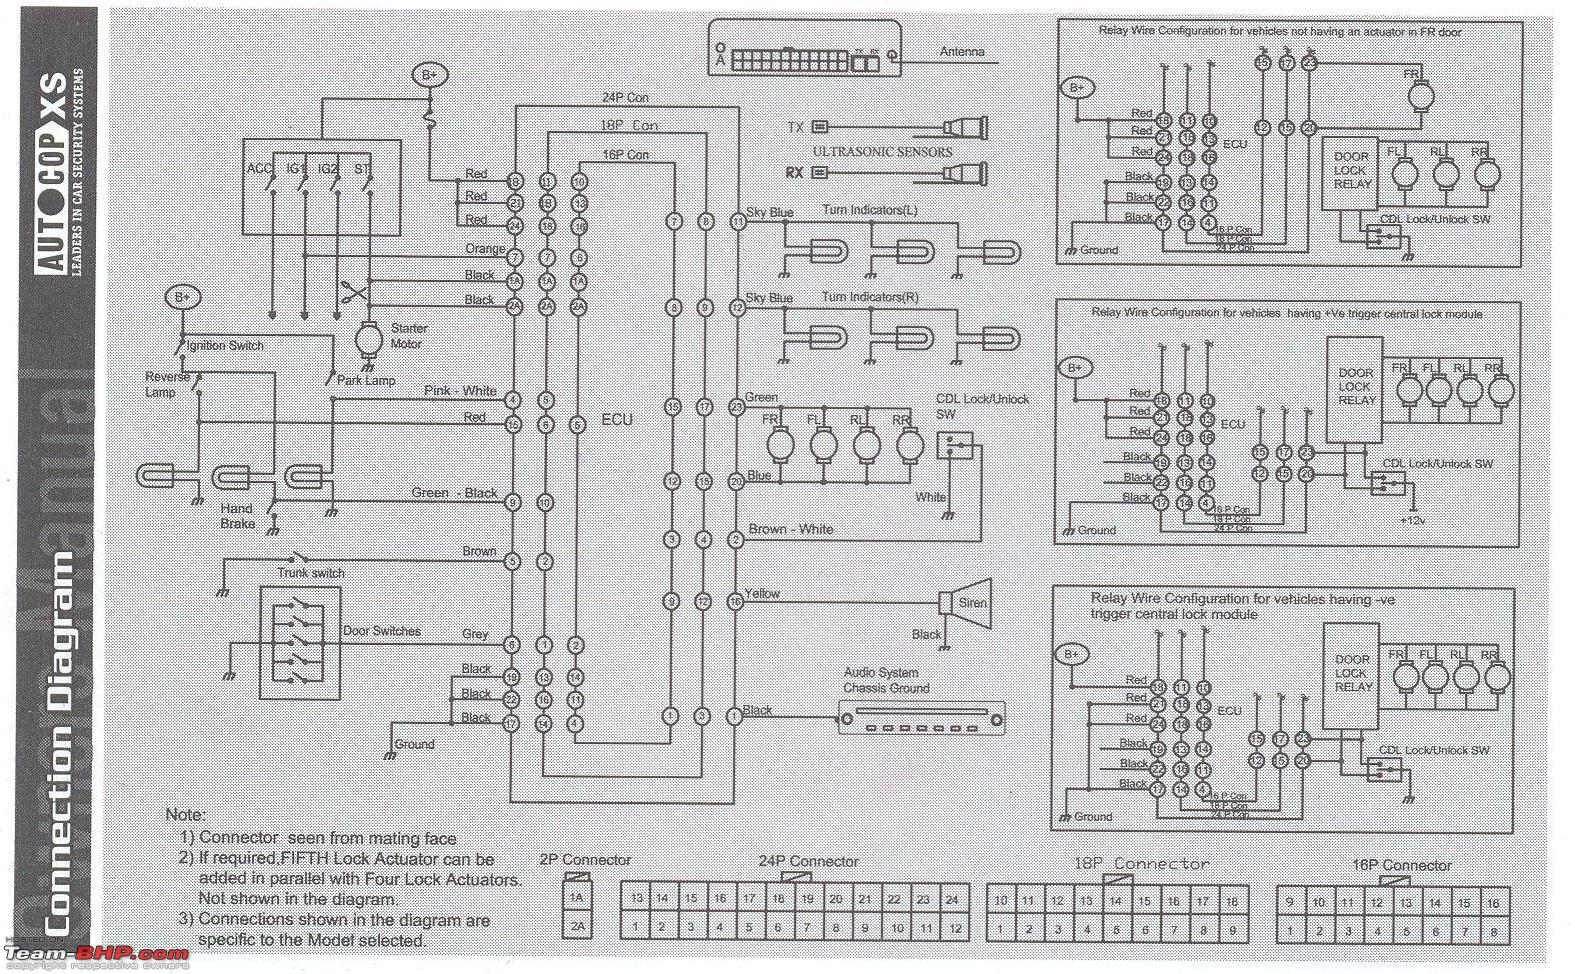 Autocop Car Security System Manual Systems Wiring Diagram Image Not Found Or Type Unknown